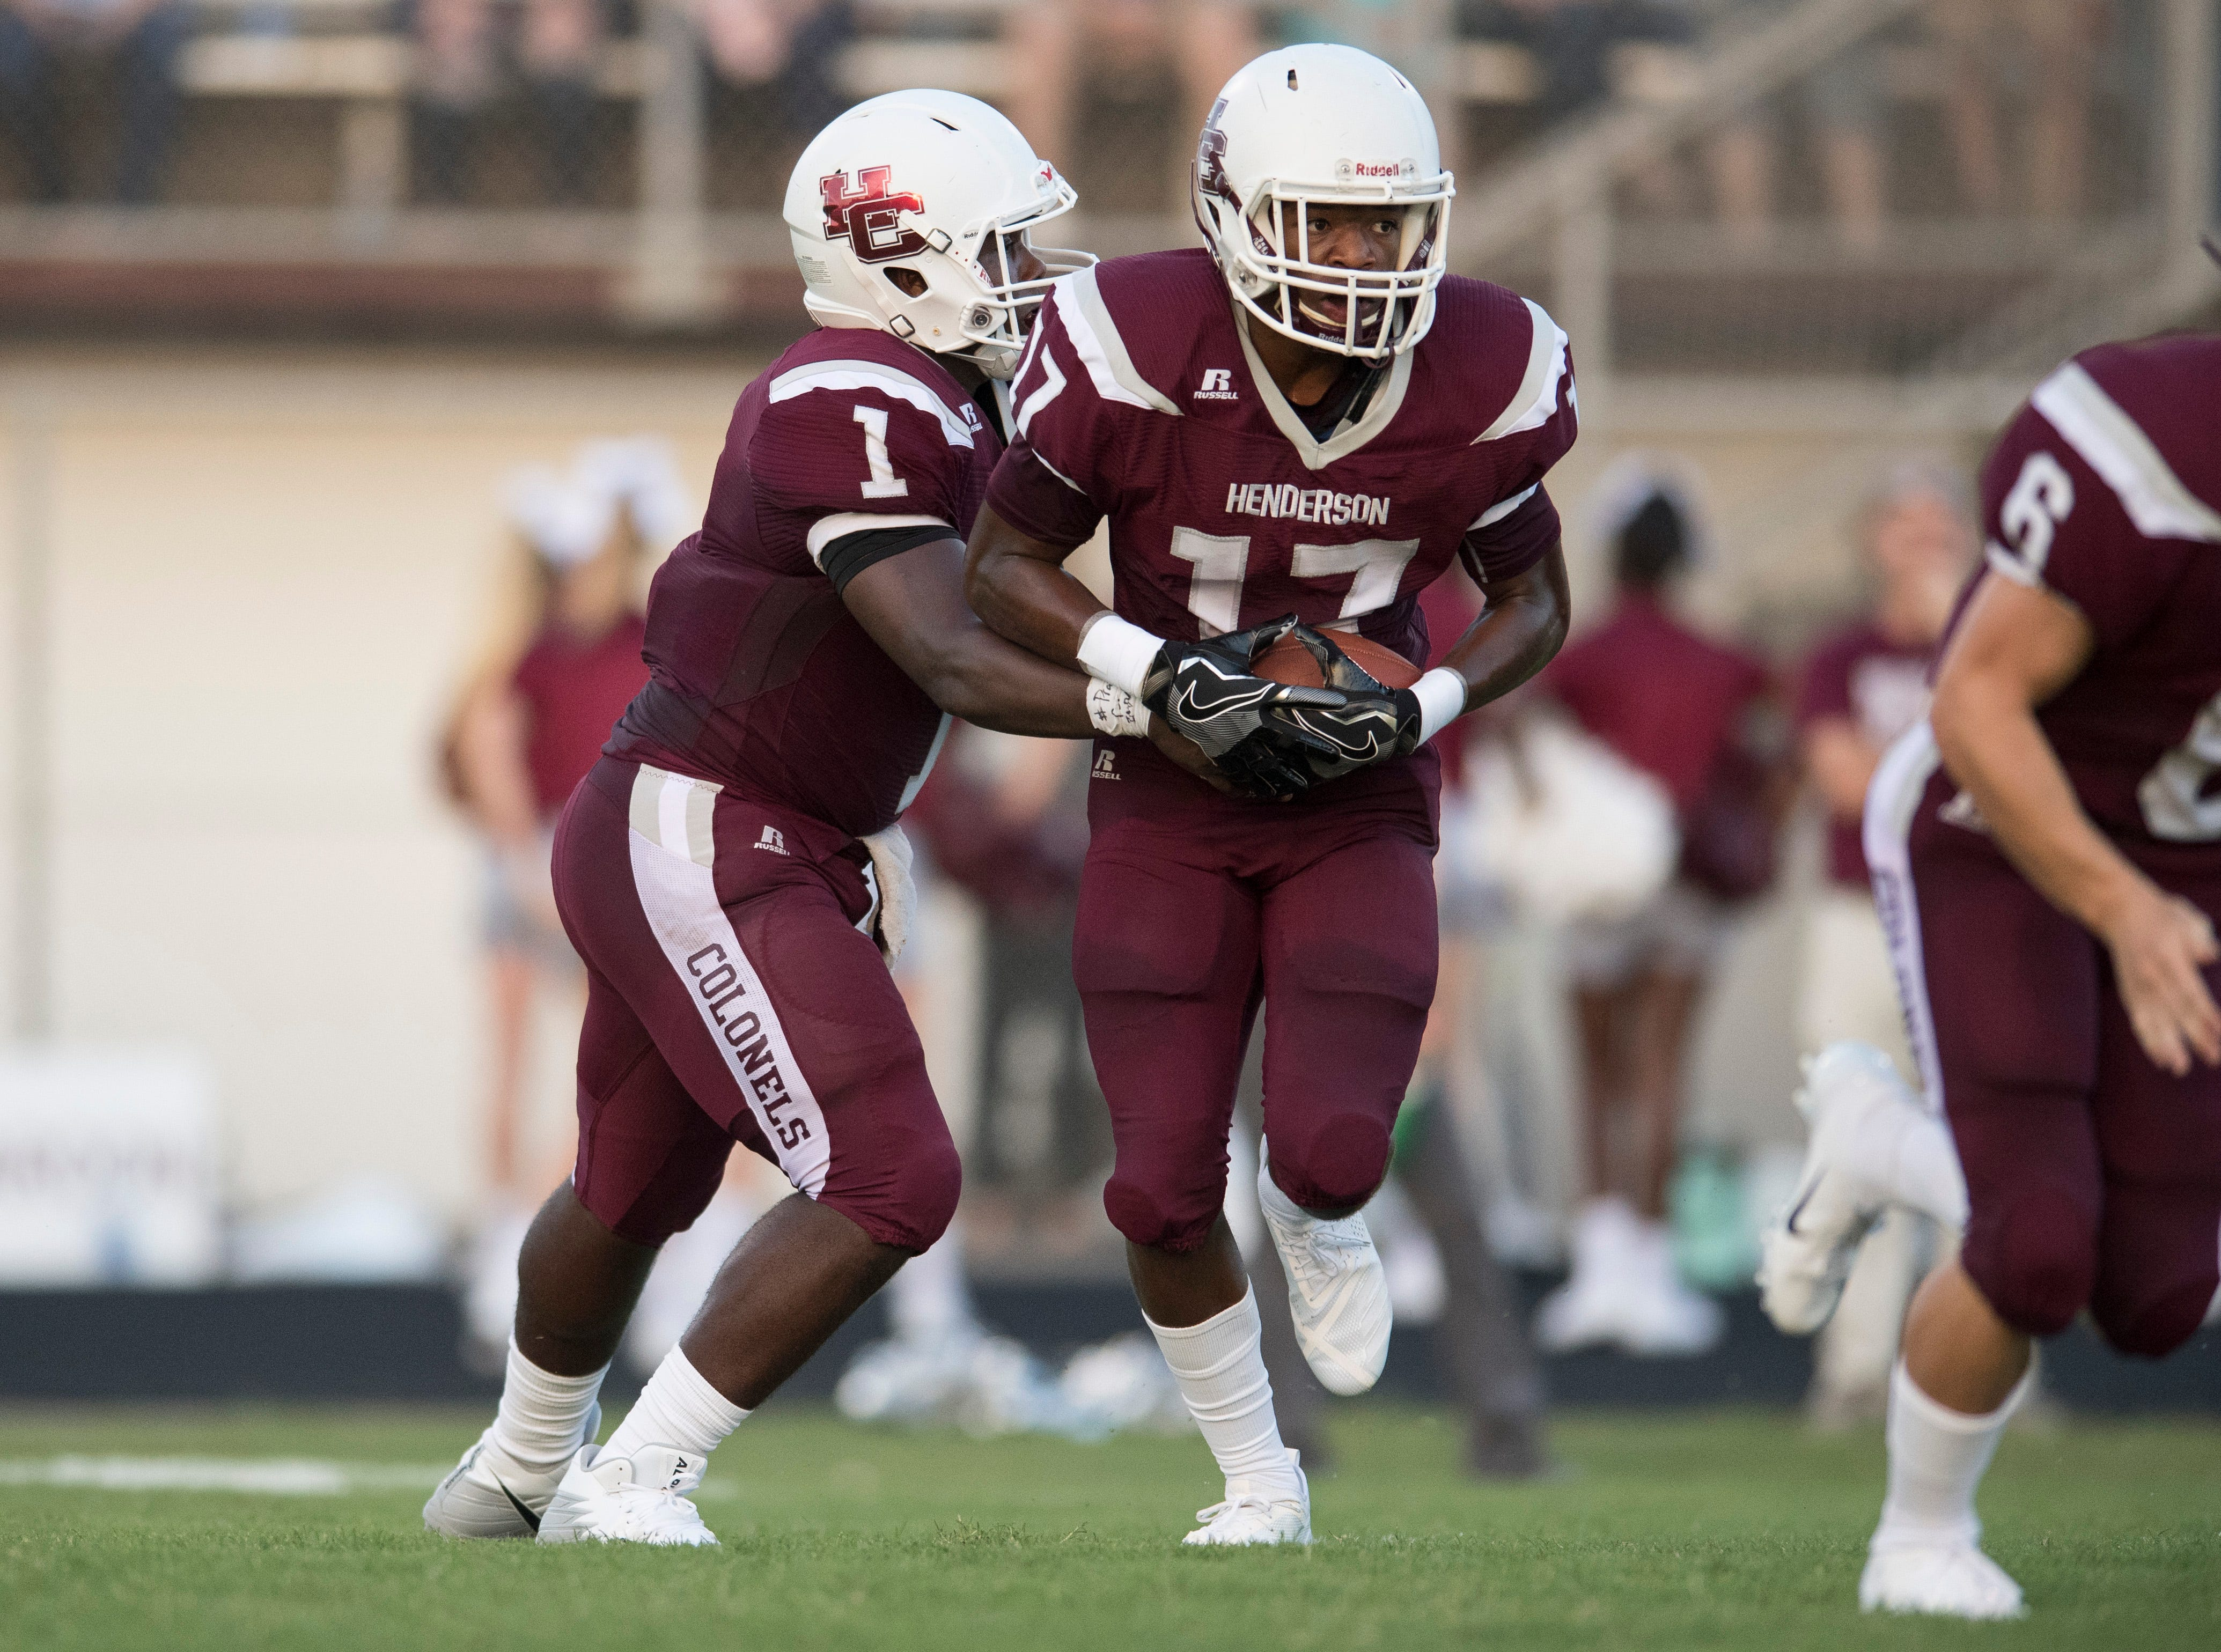 Henderson's Skip Patterson (1)  hands off the ball to HendersonÕs Isaiah Easley (17) during the Reitz vs Henderson County football game Colonels Stadium Friday, August 17, 2018.